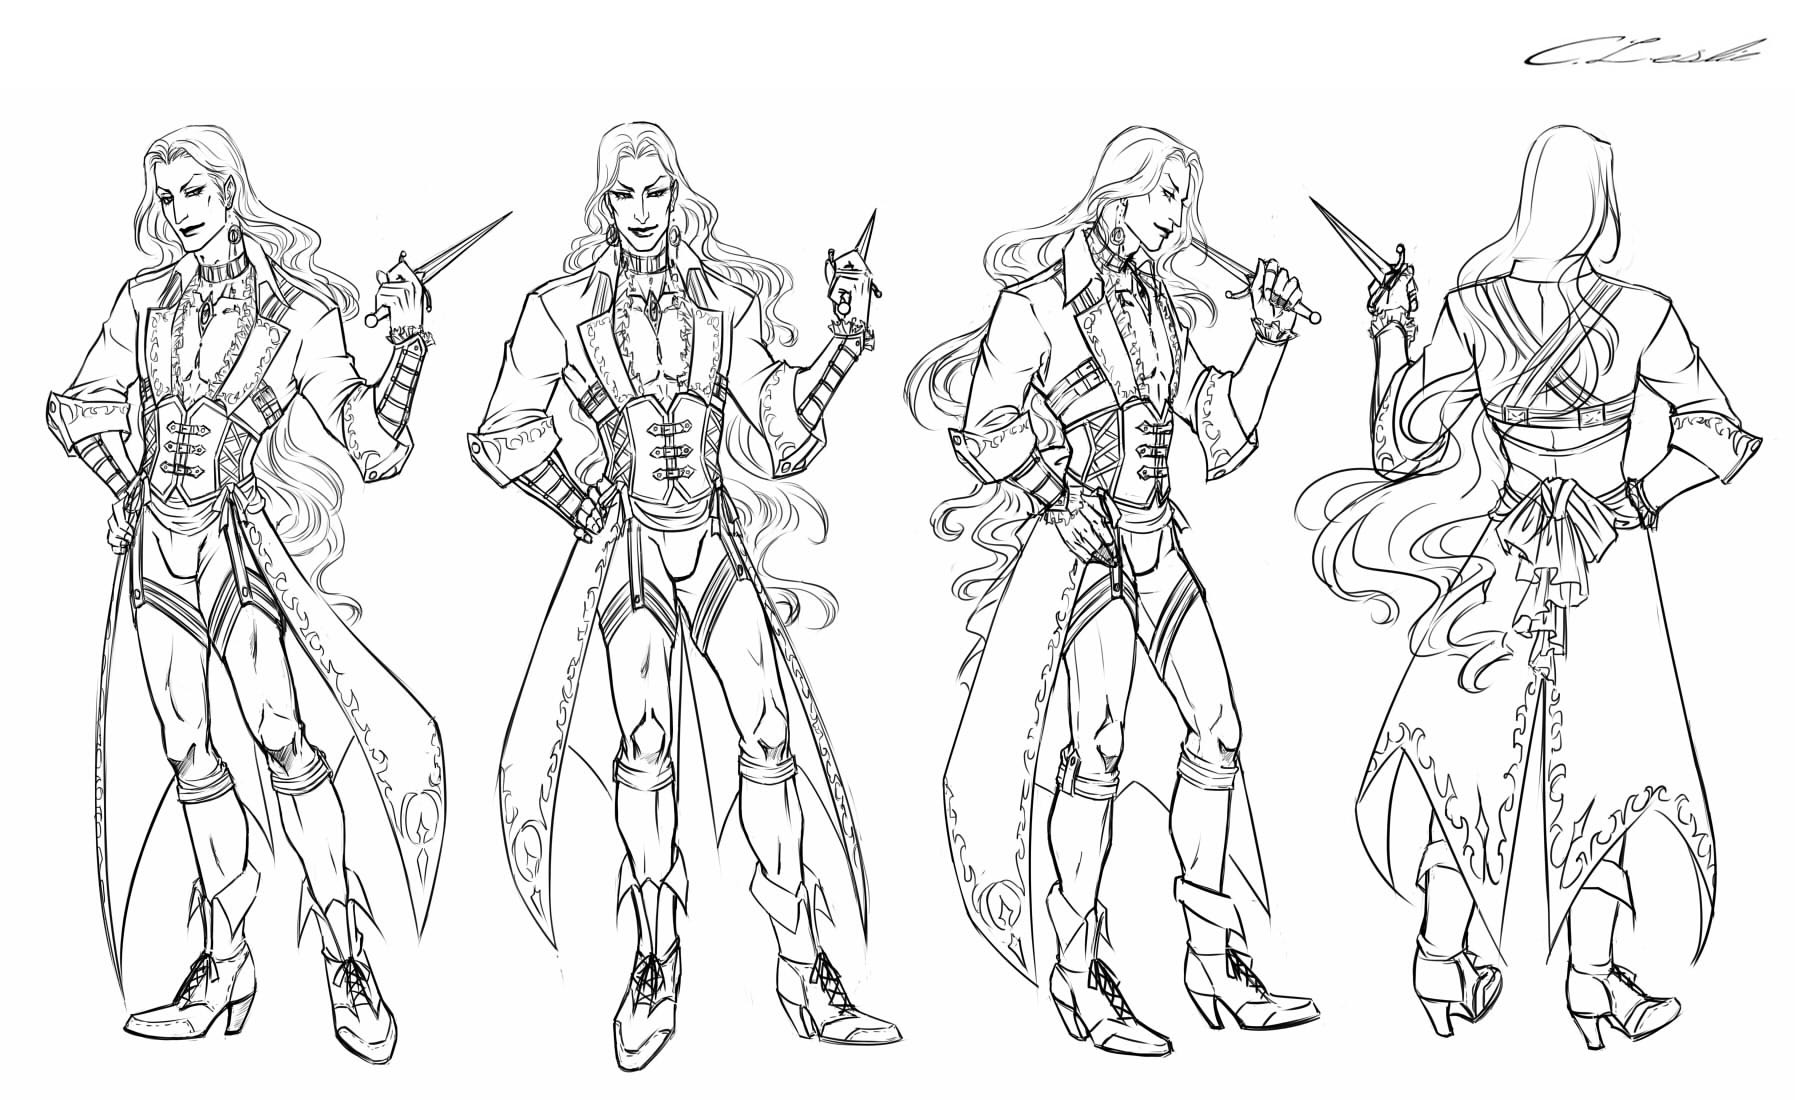 Silas talbot character sheet by meiseki on deviantart for Manga character template